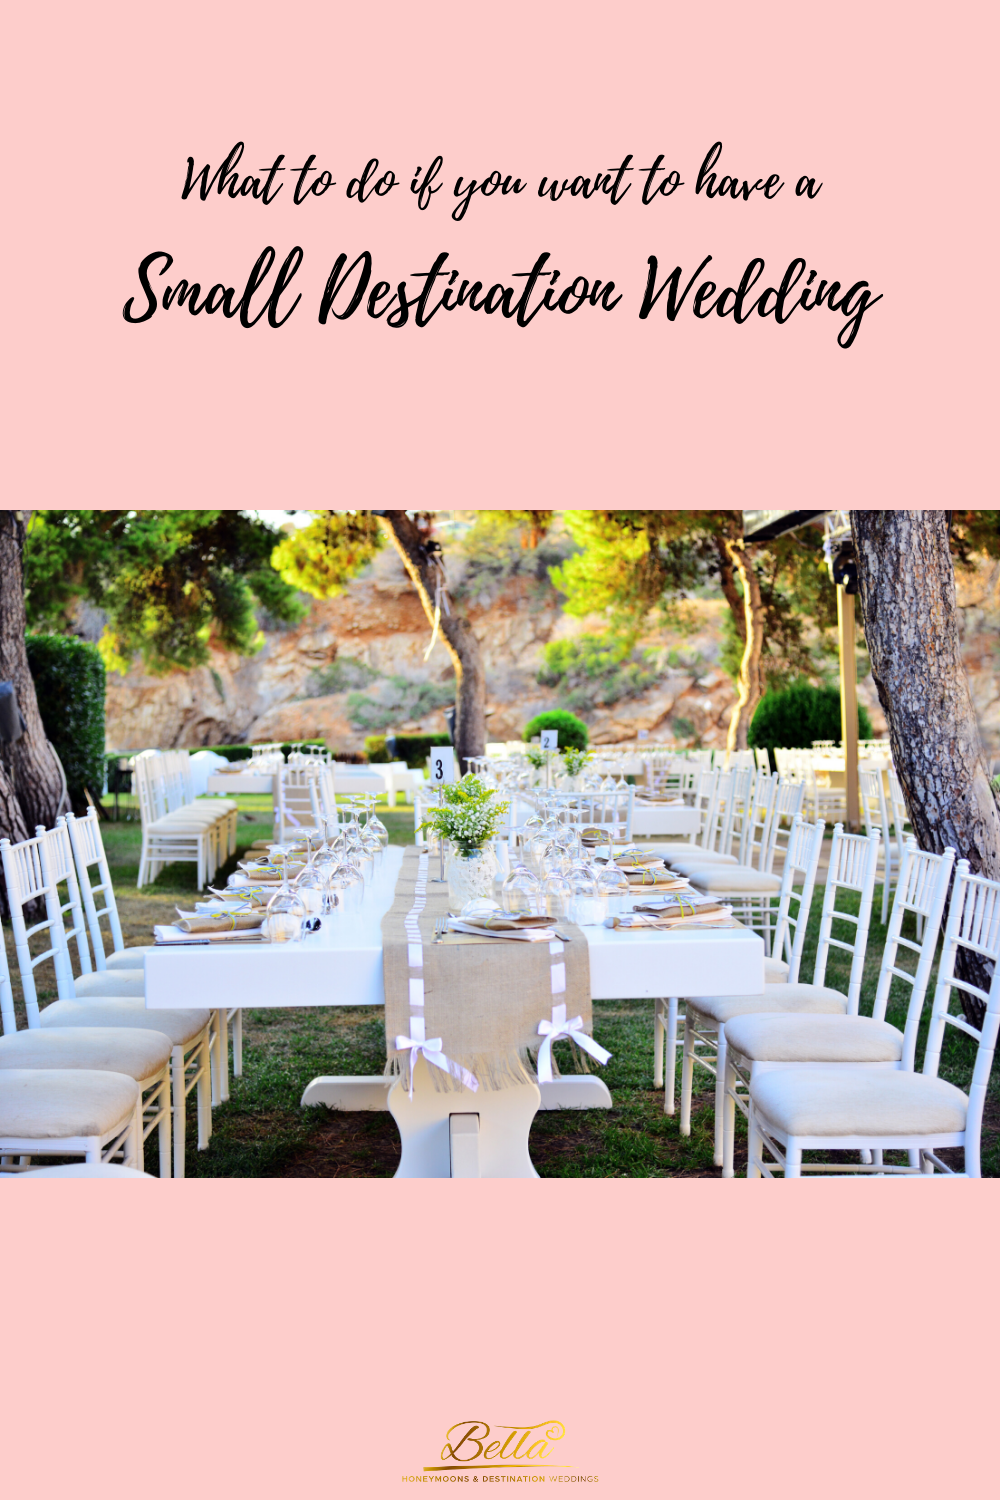 What To Do If You Want To Have A Small Destination Wedding In 2020 Small Destination Weddings Small Wedding Destination Wedding